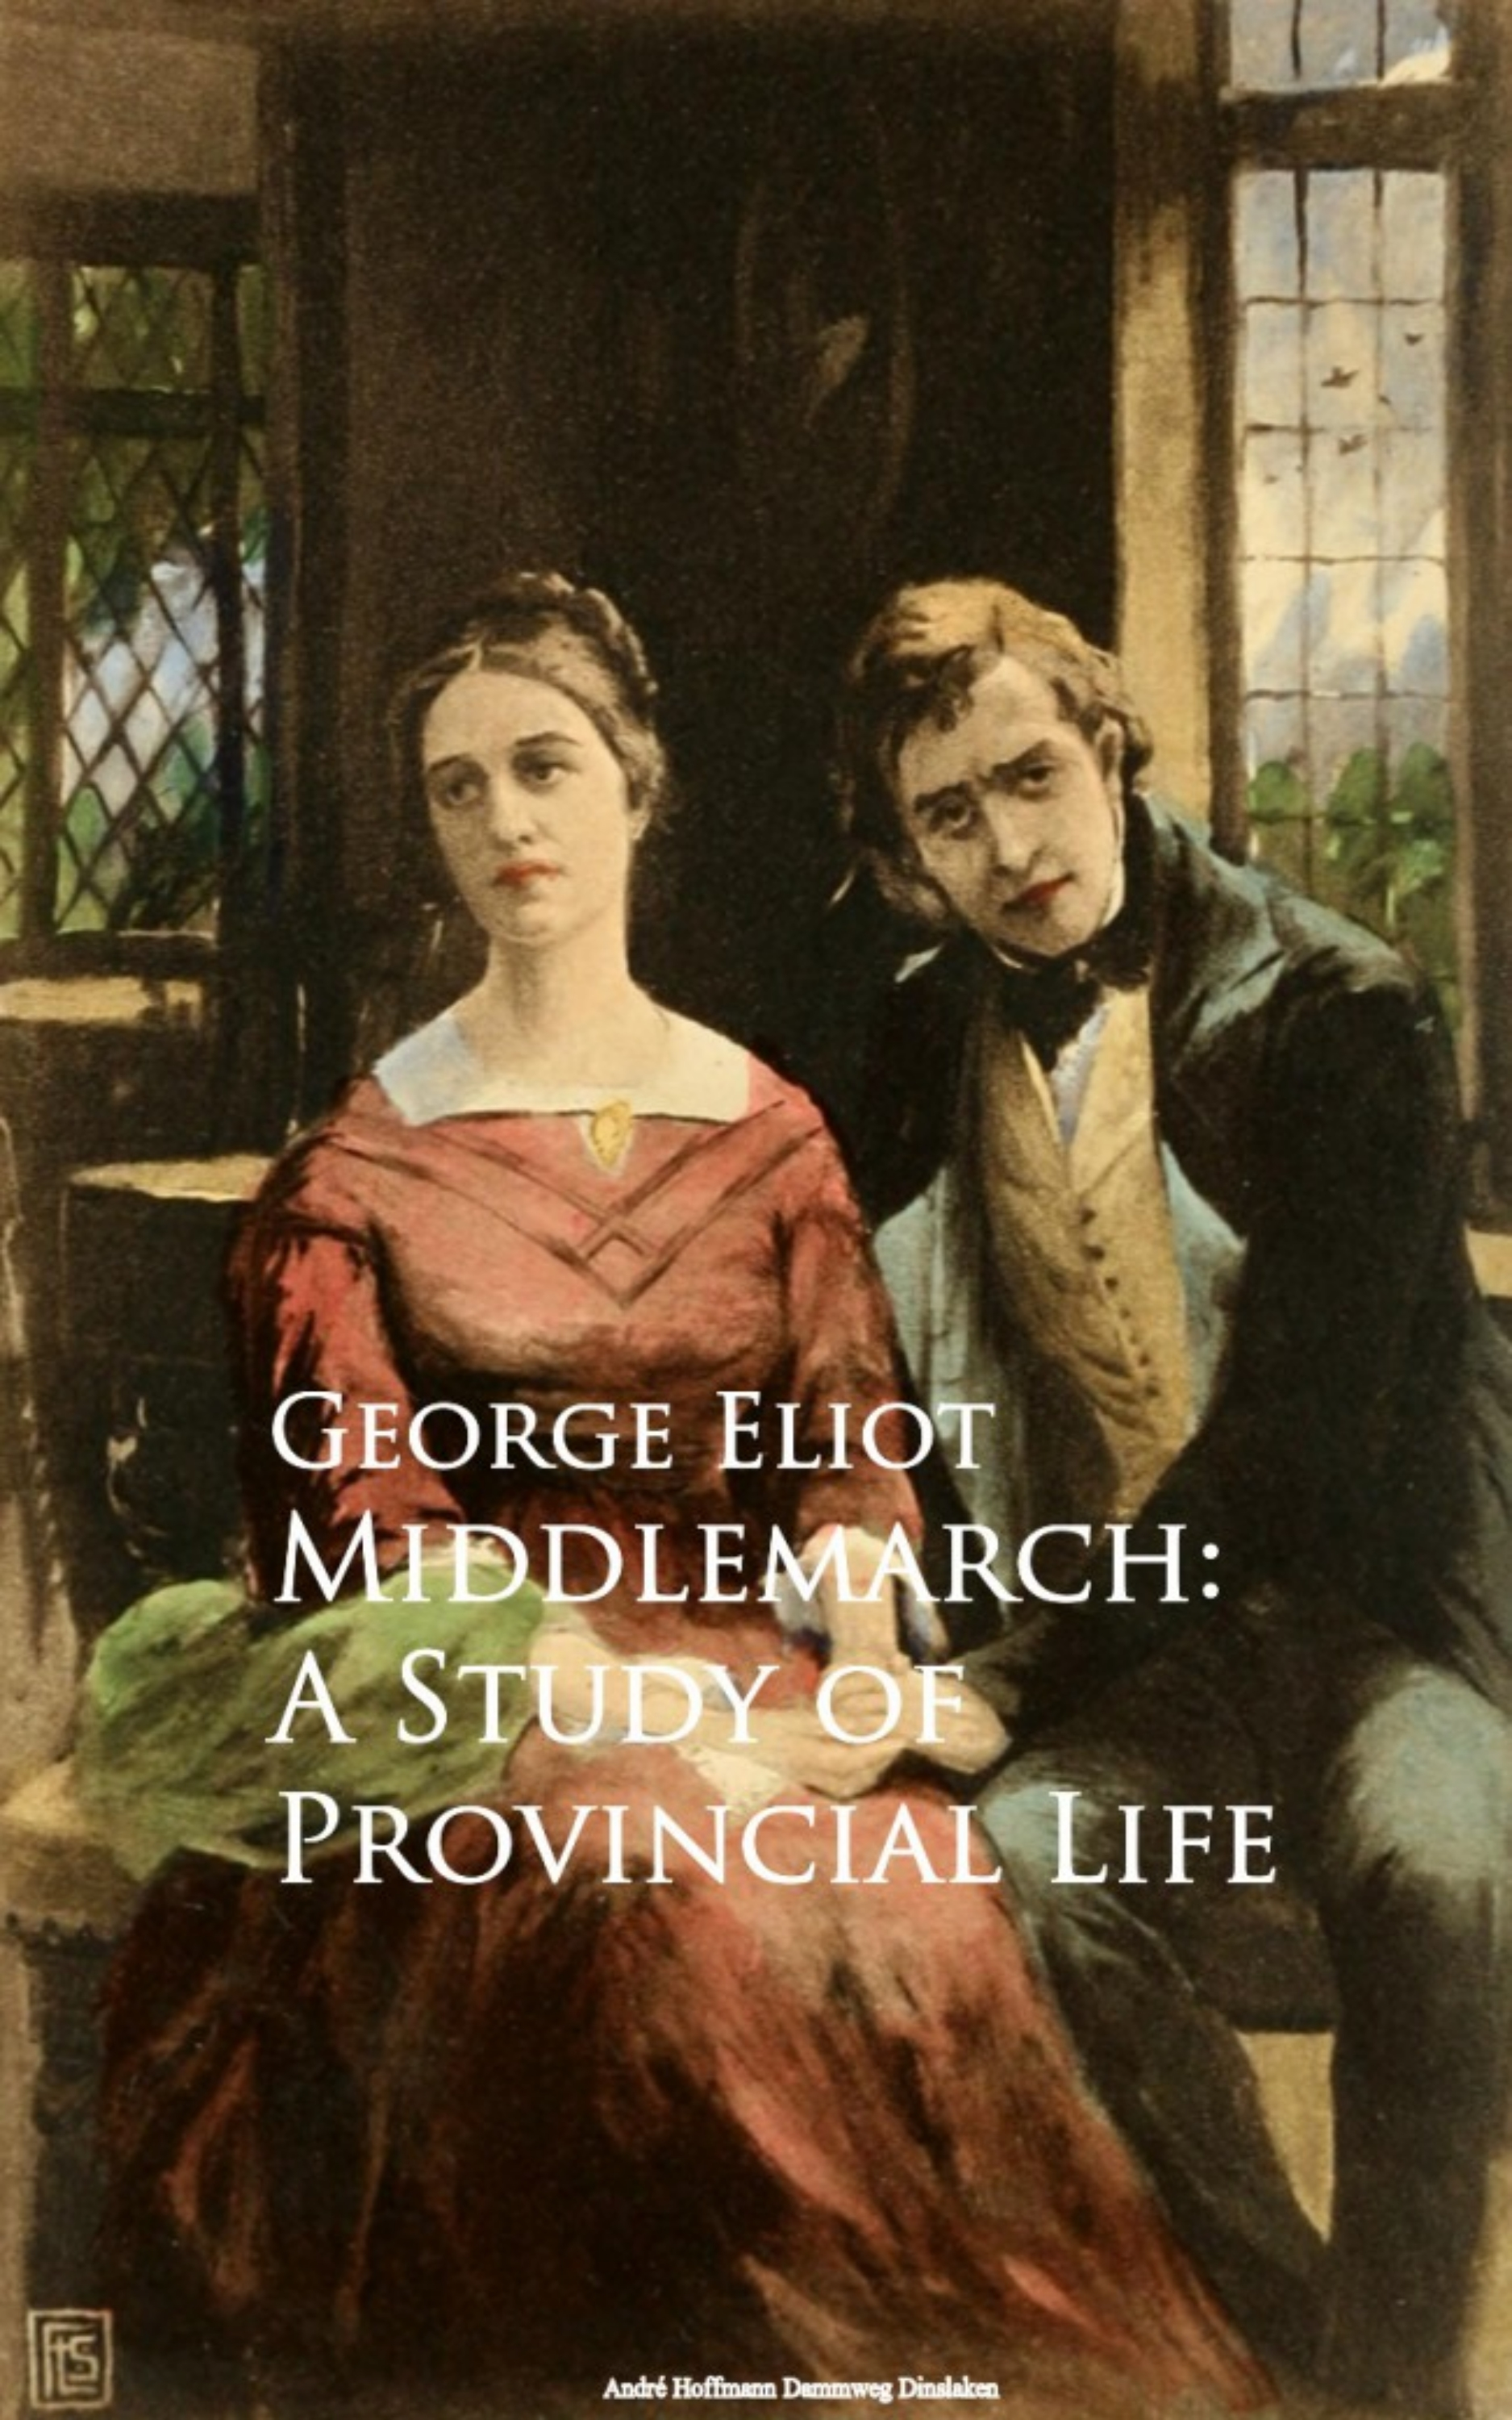 George Eliot Middlemarch: A Study of Provincial Life